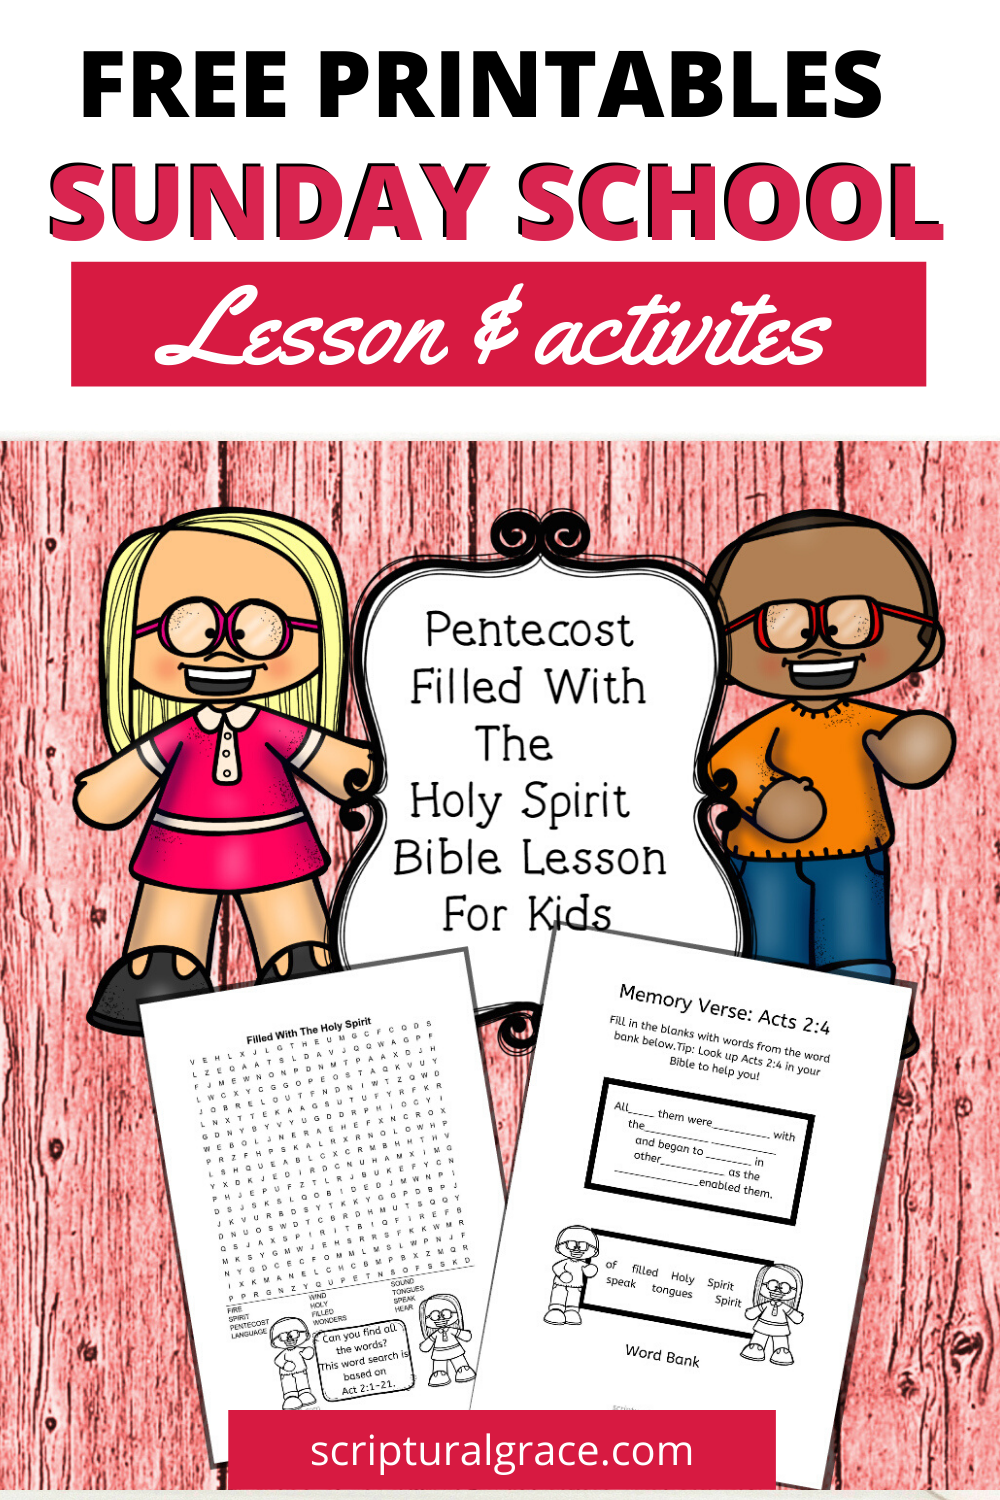 Pentecost The Holy Spirit comes bible lesson for kids with free printable activites and puzzles.